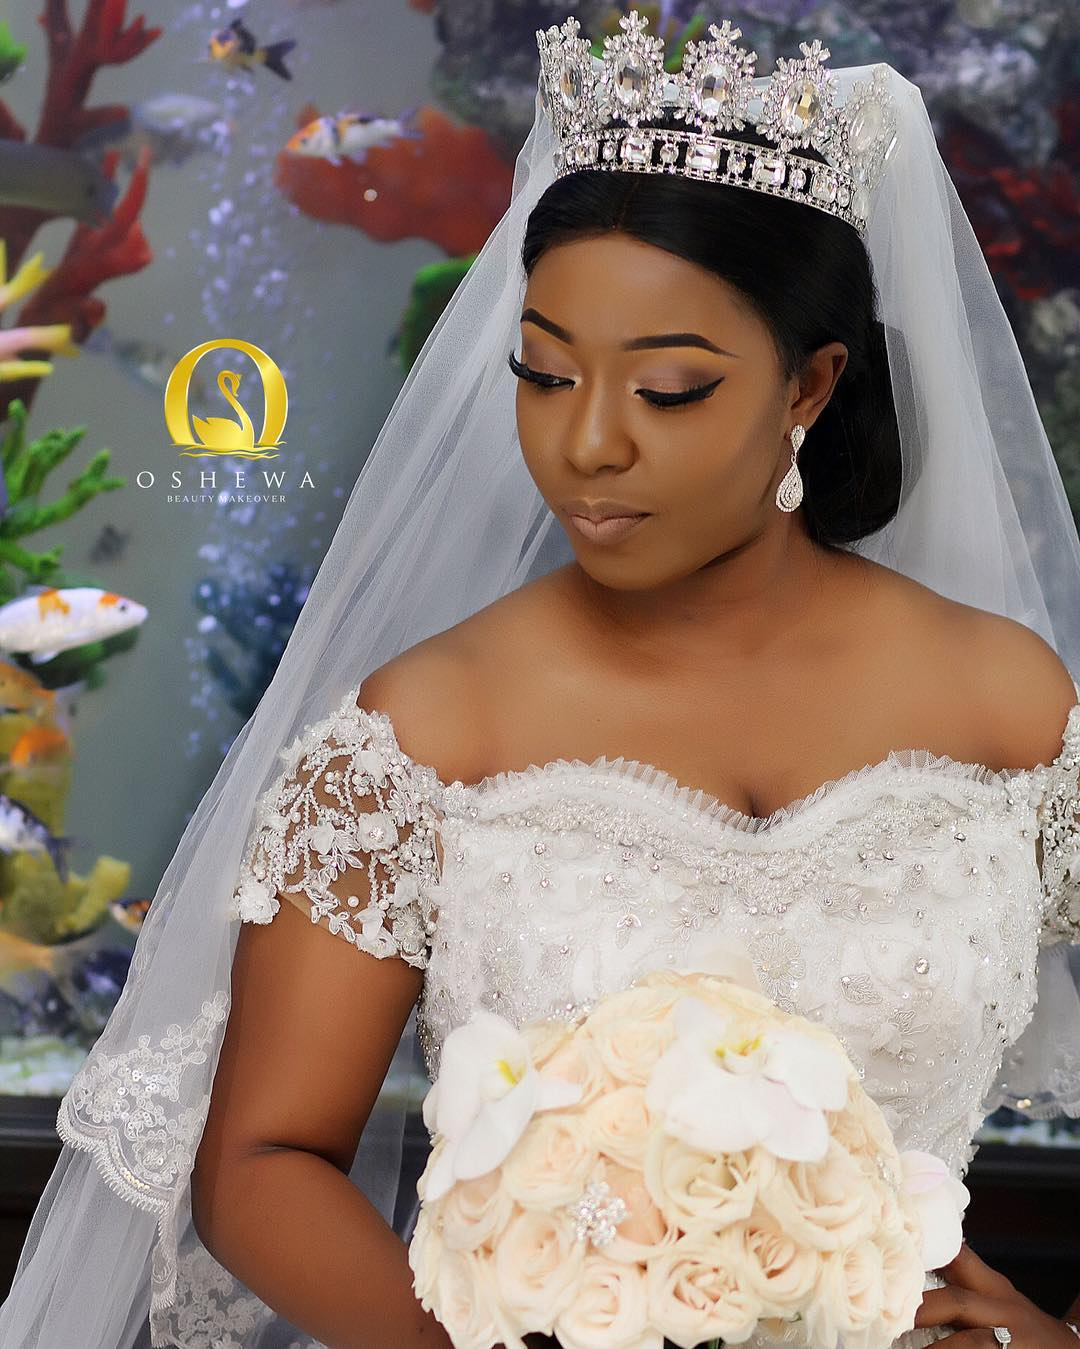 Wedding Bridal Gowns And Accessories Nigeria - Accessories Photos ...